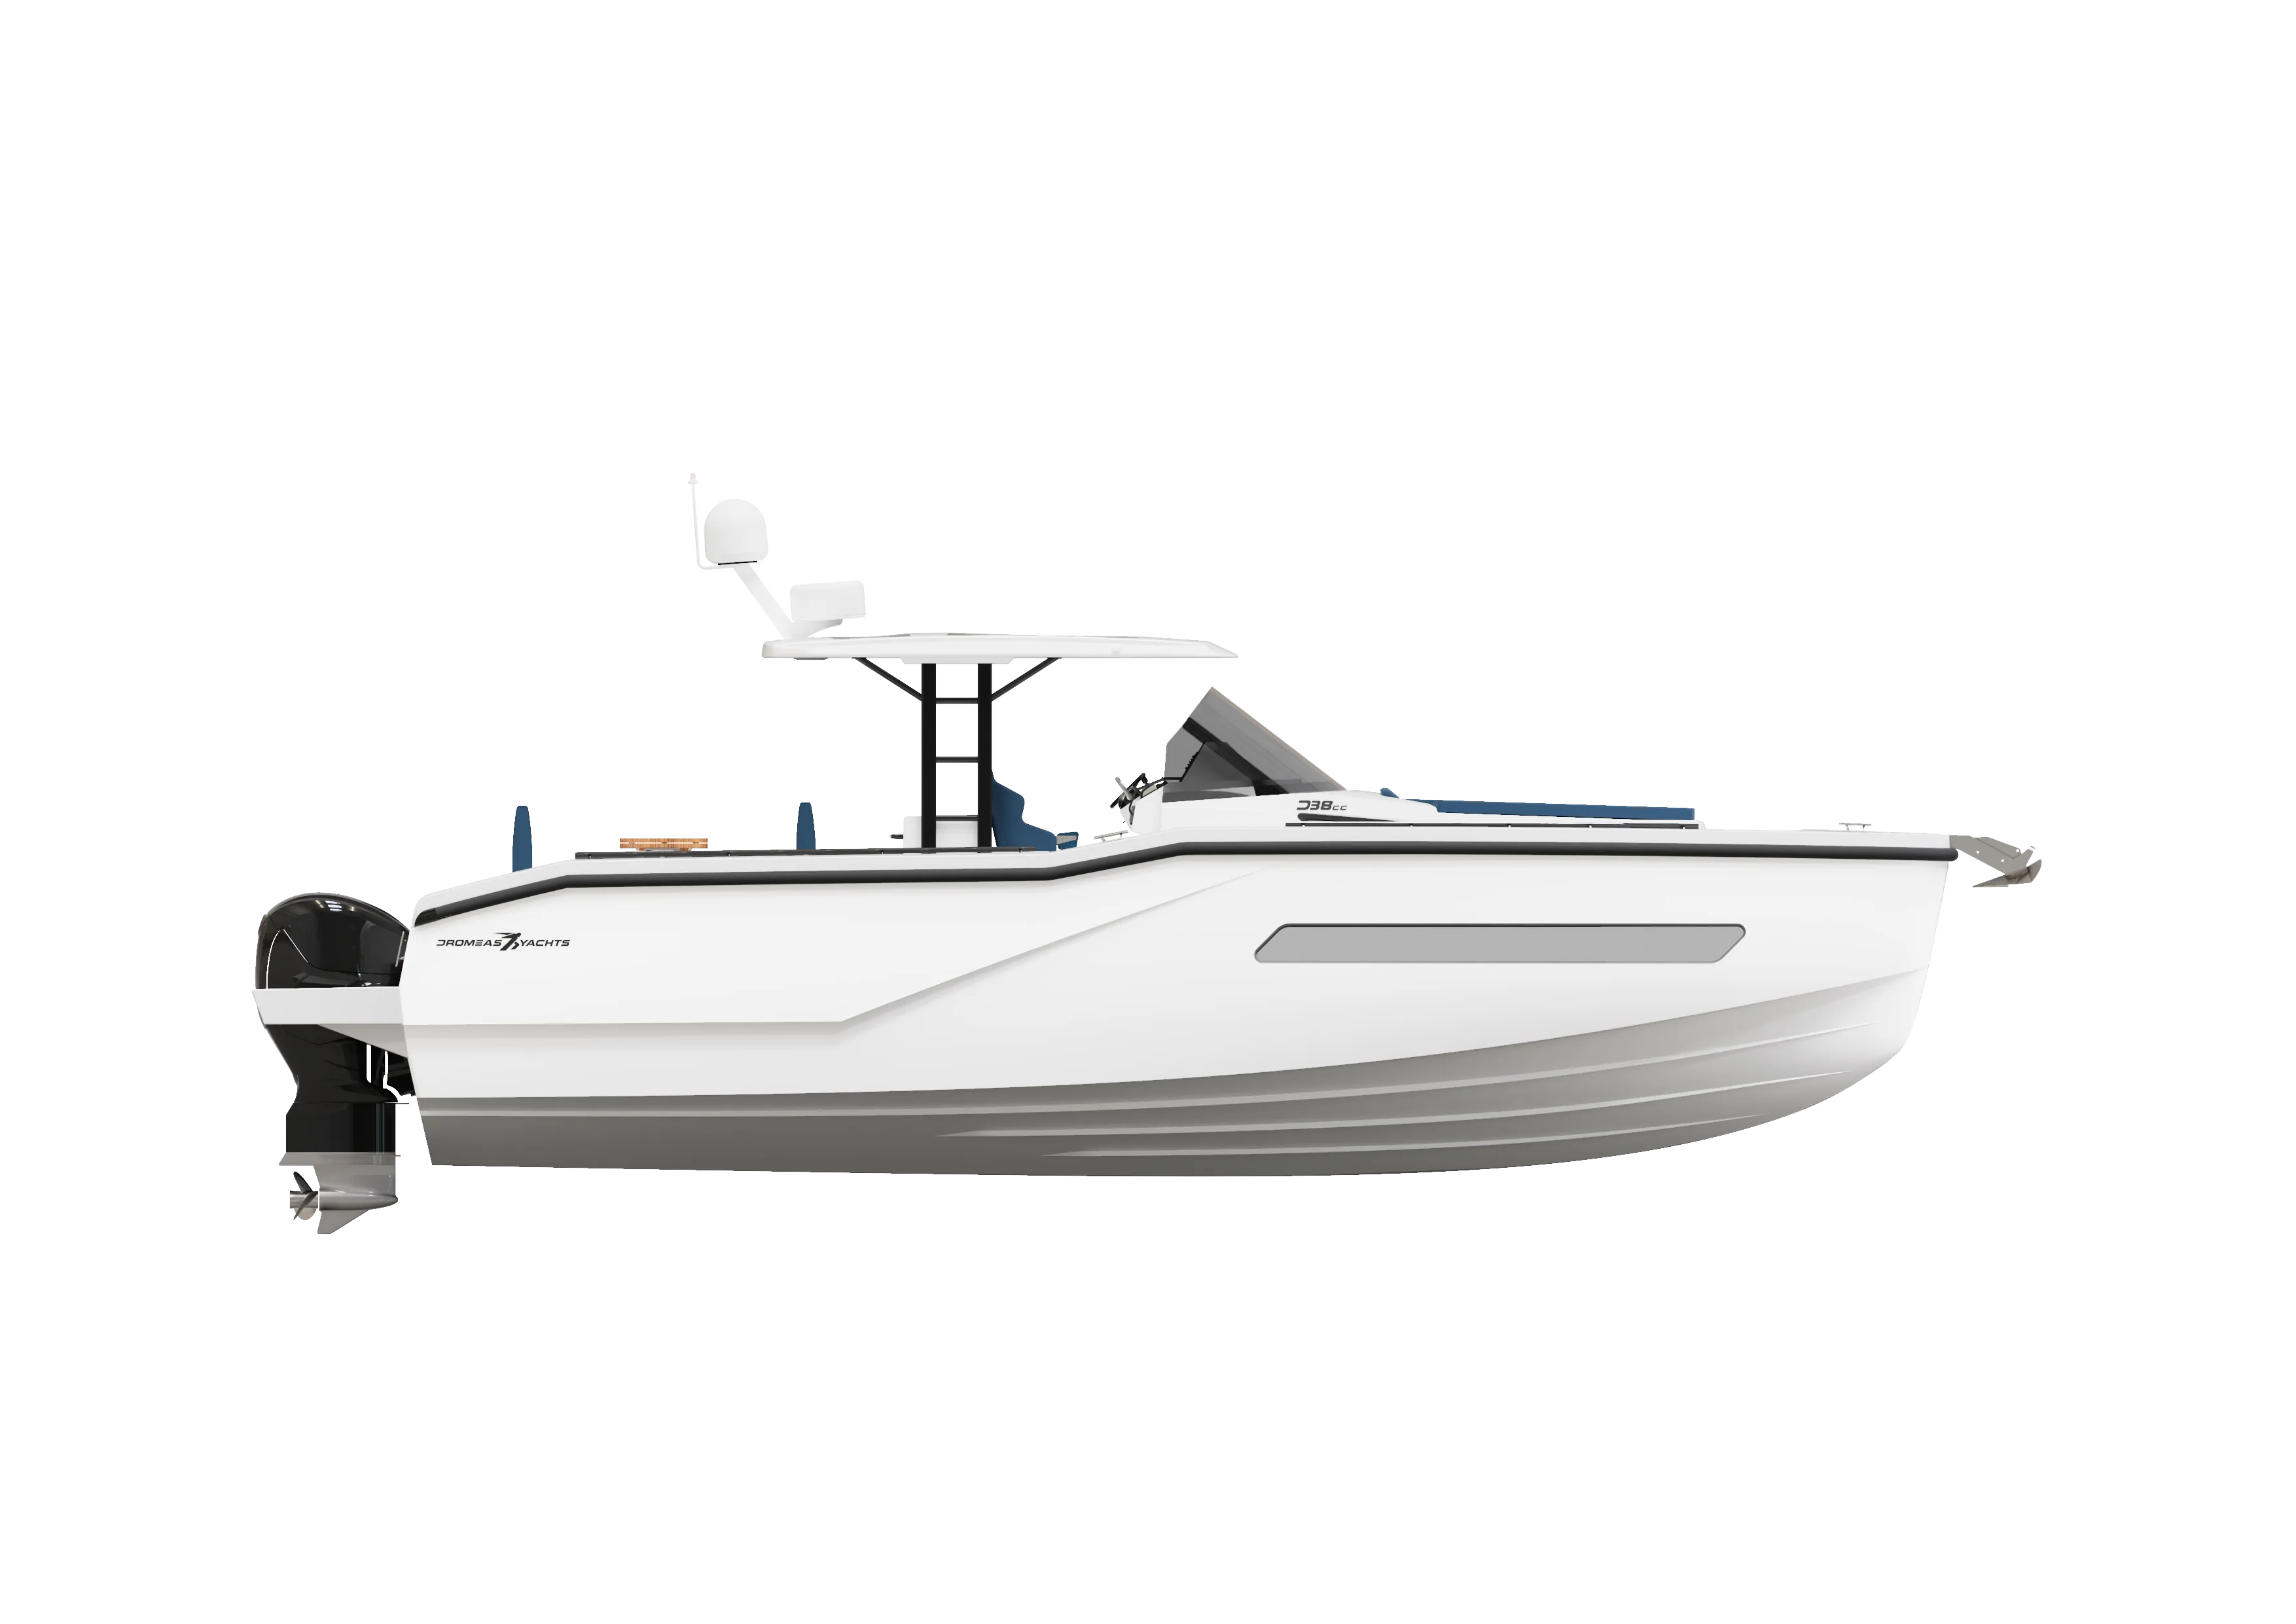 A side view render of our D38 CC model